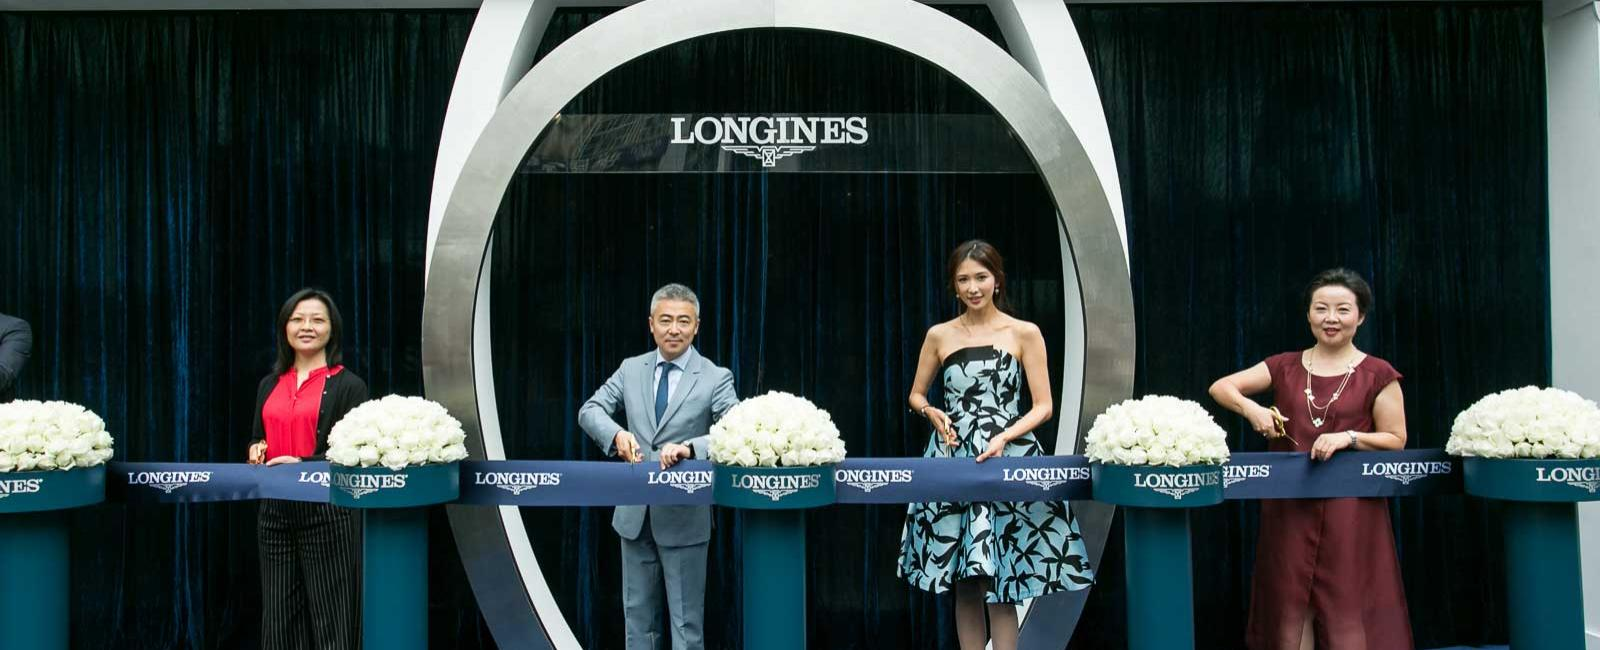 Longines' New Boutique in Chongqing officially inaugurated with Longines Ambassador of Elegance Chi-Ling Lin, Opening, China, Elegance, Inauguration, Shopping Mall